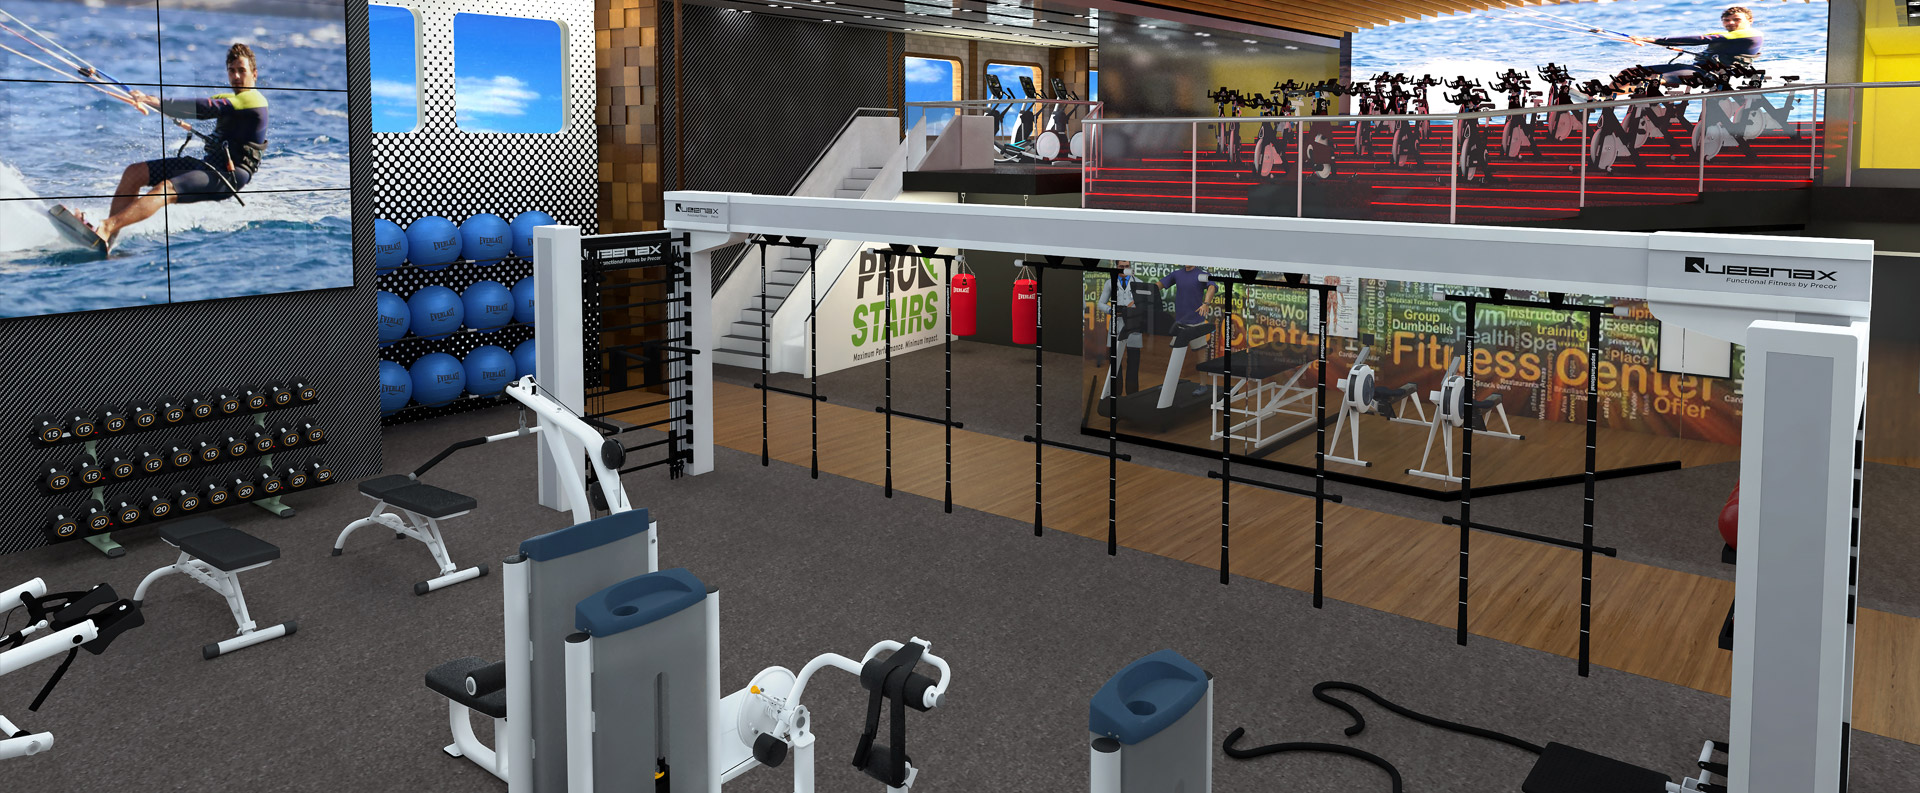 The largest functional training facility at sea